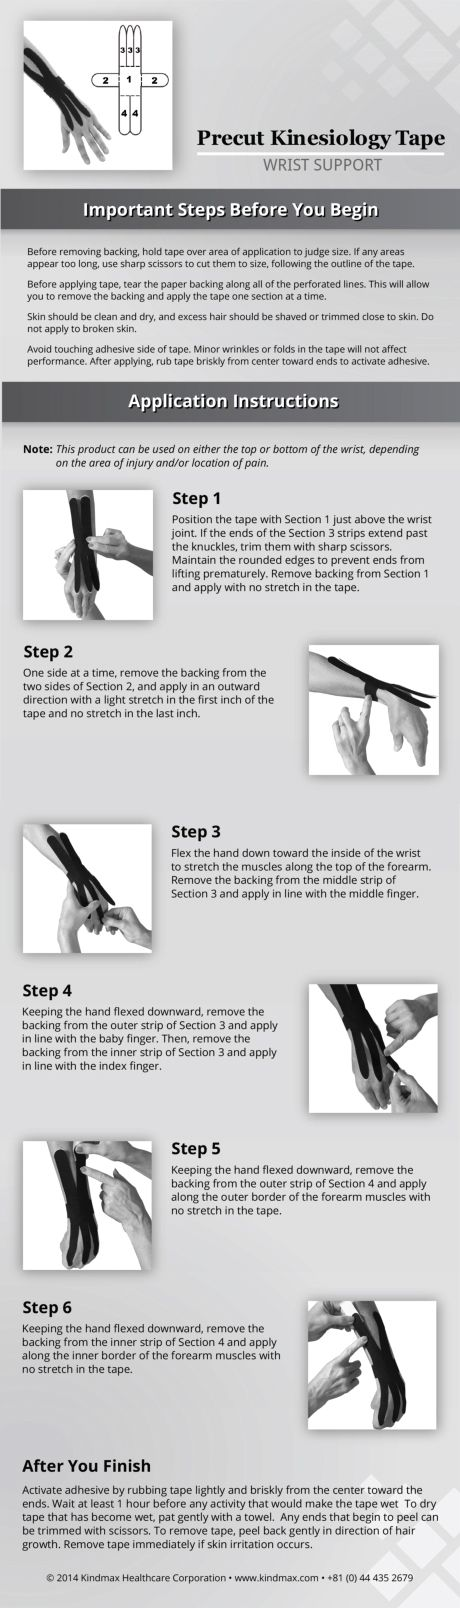 Wrist support with precut kinesiology tape #PrecutTape #TapingInstructions #StepByStepTaping #Kinesiotape